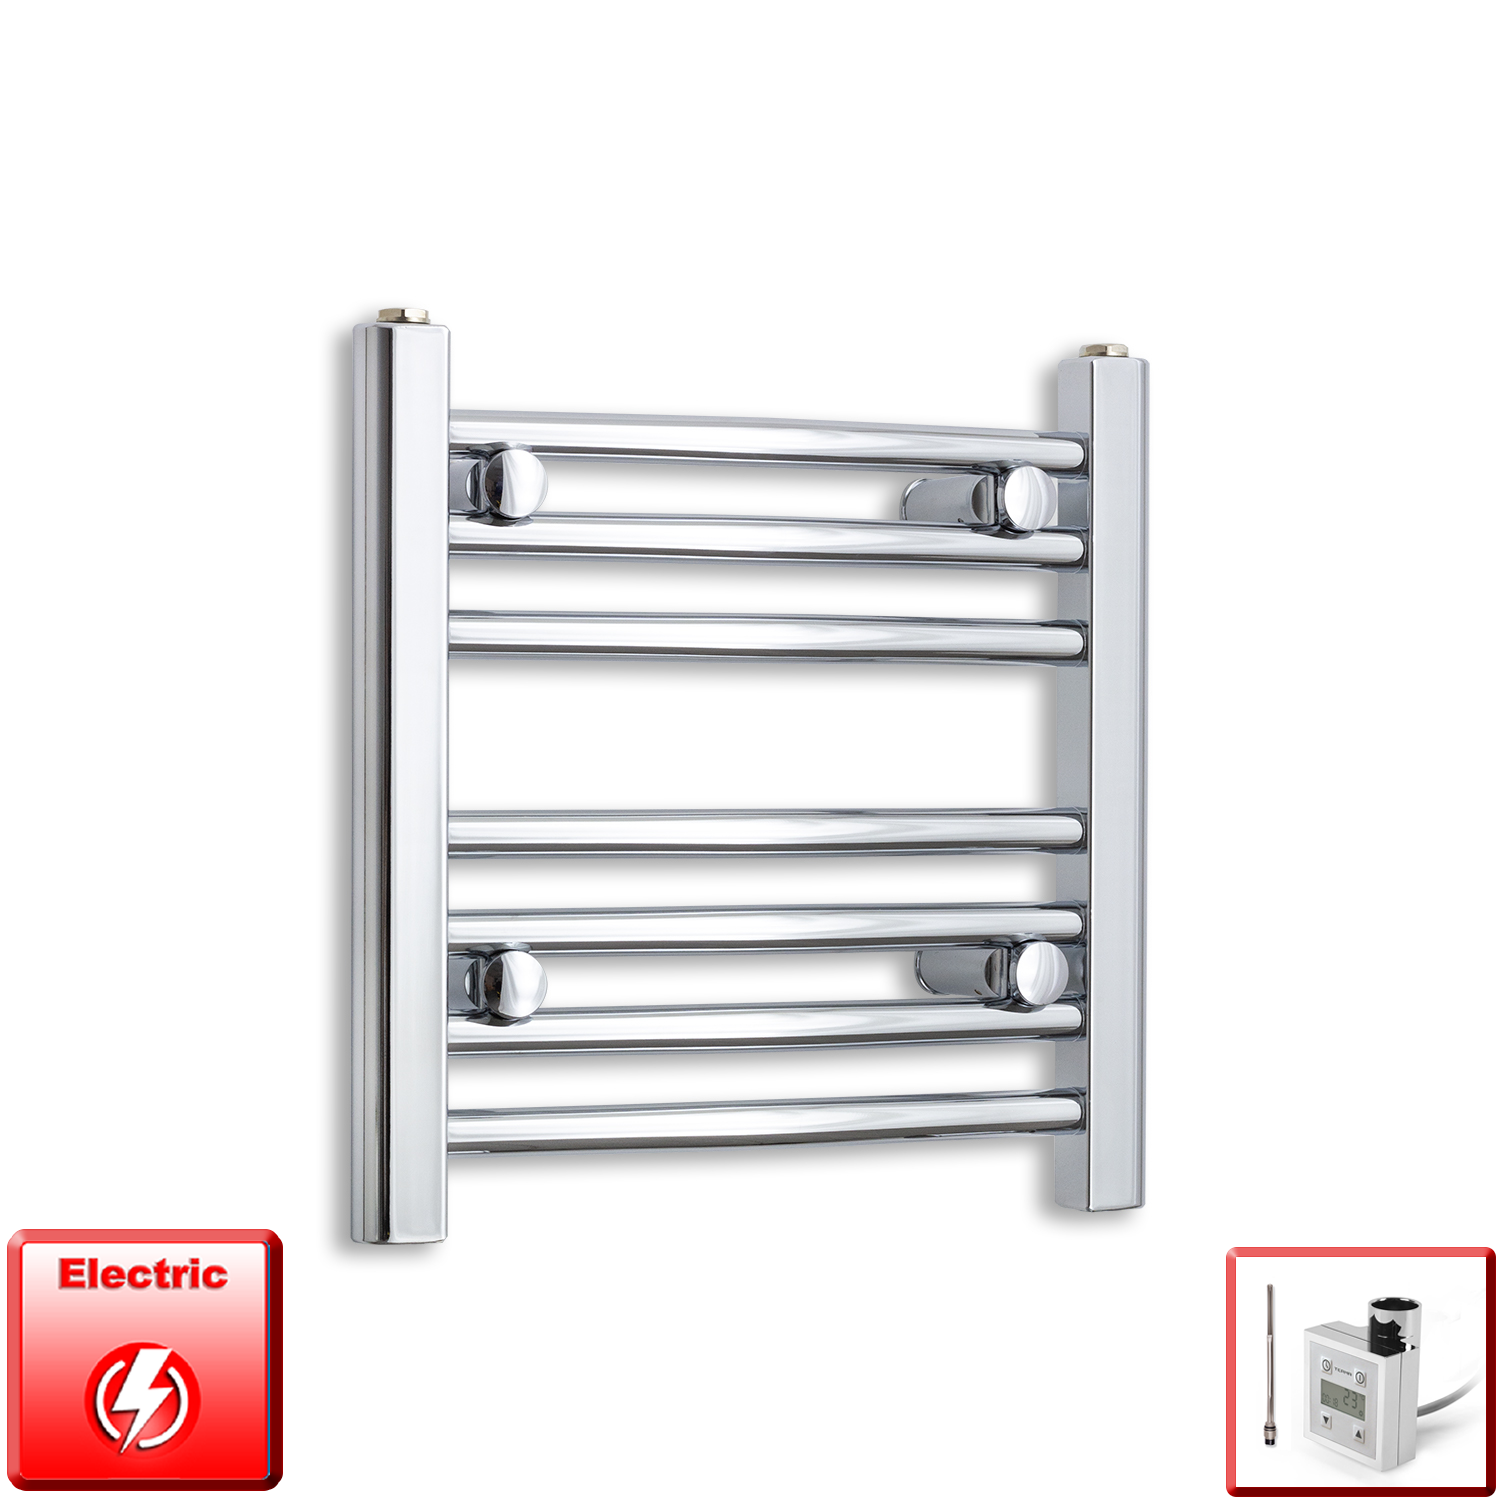 500mm Wide 400mm High Flat Or Curved Chrome Pre-Filled Electric Heated Towel Rail Radiator HTR,KTX-3 Thermostatic Element / Straight